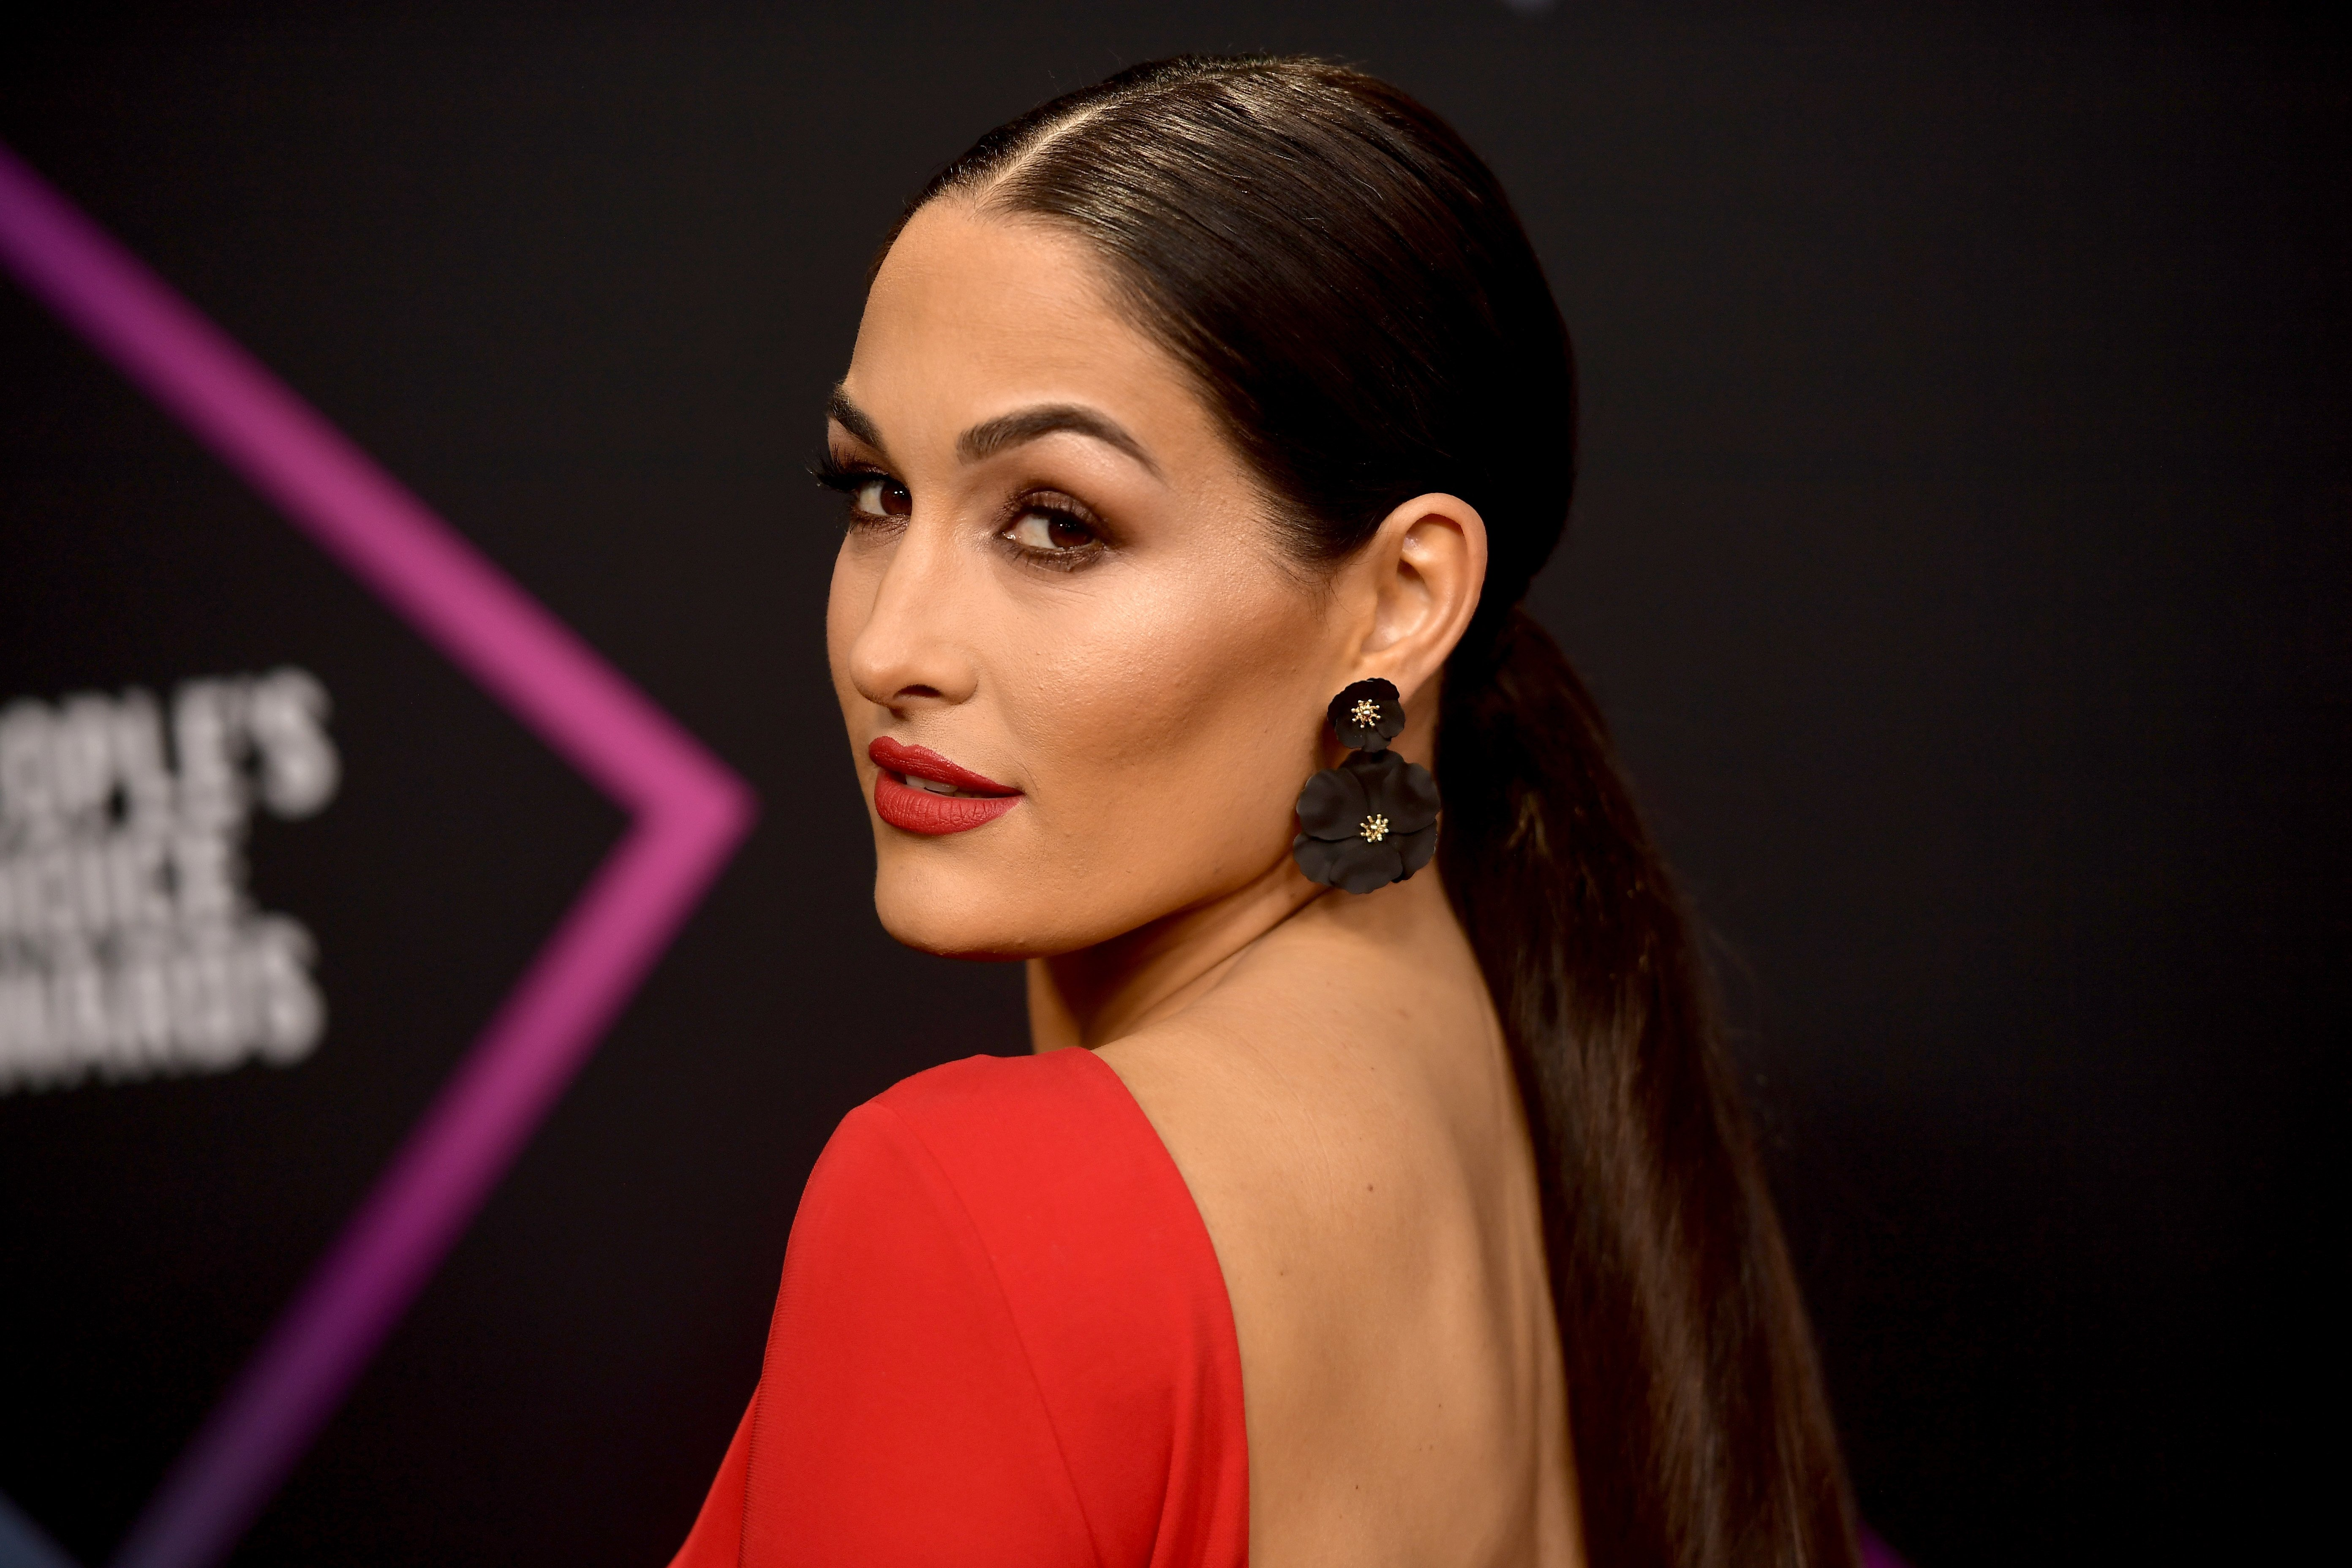 Nikki Bella attends the People's Choice Awards on November 11, 2018 in Santa Monica, California | Photo: Getty Images